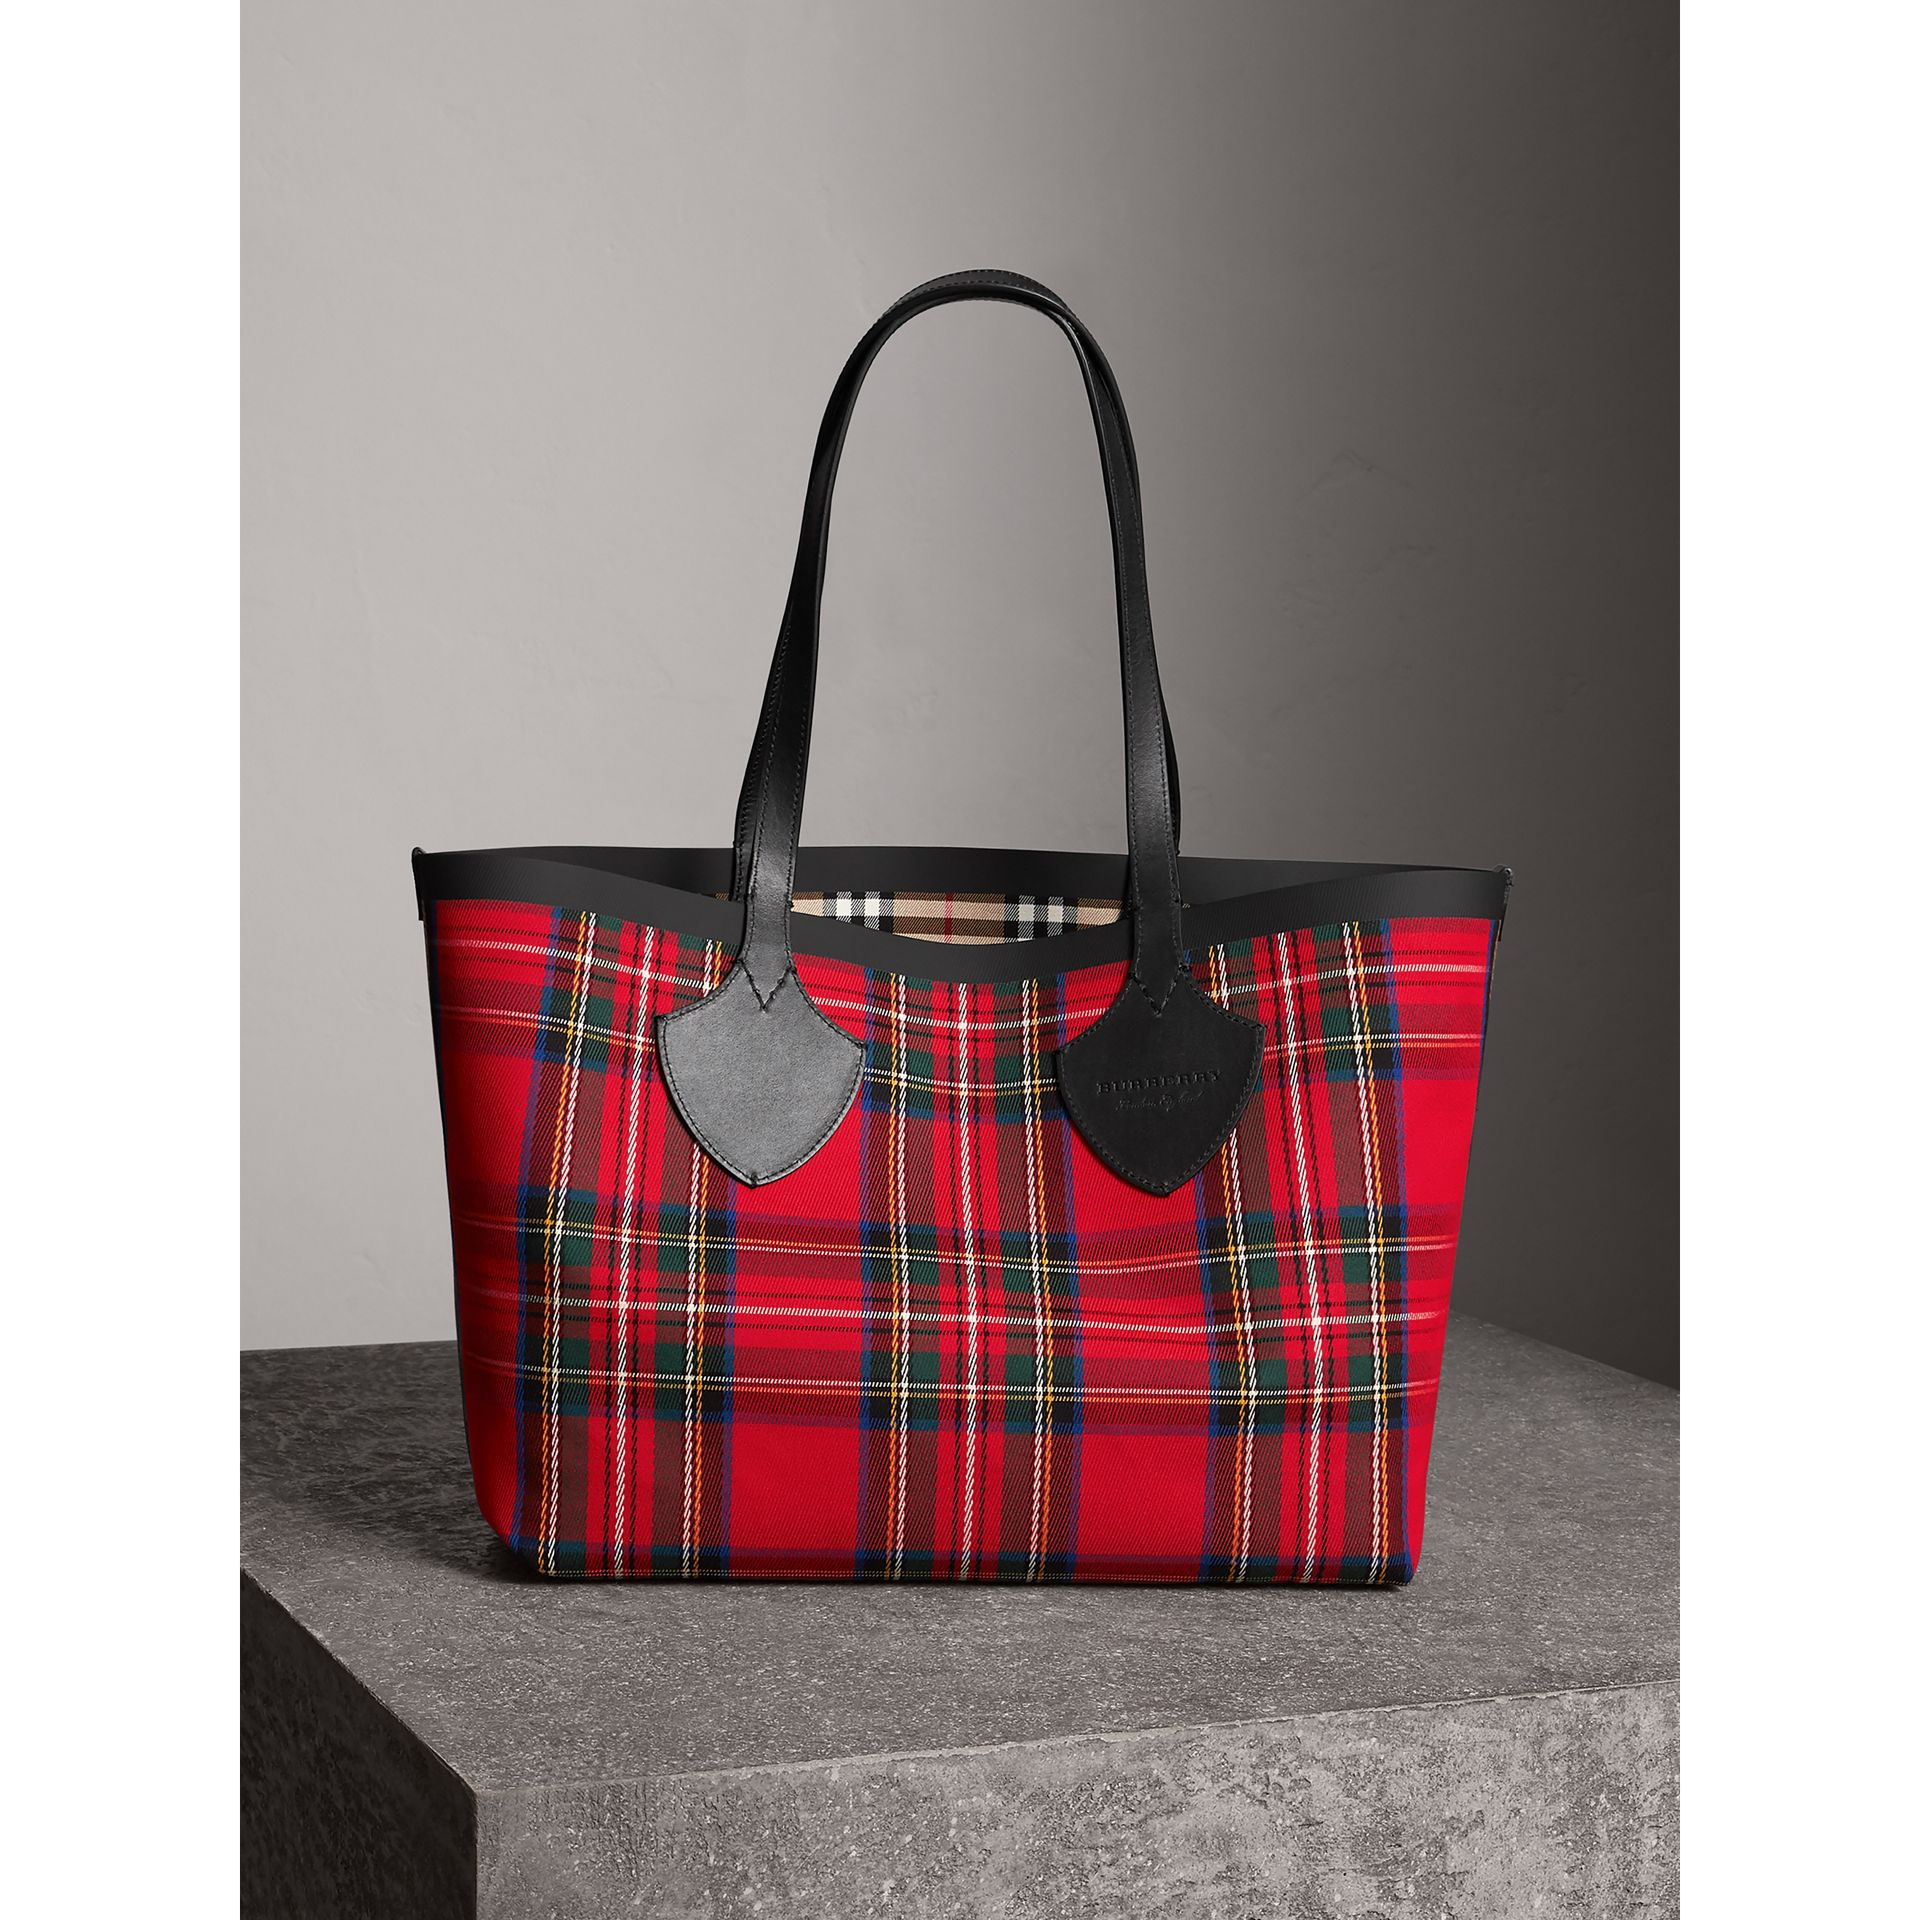 Sac tote The Giant moyen en Vintage check (Jaune Antique/rouge Vif) | Burberry - photo de la galerie 1